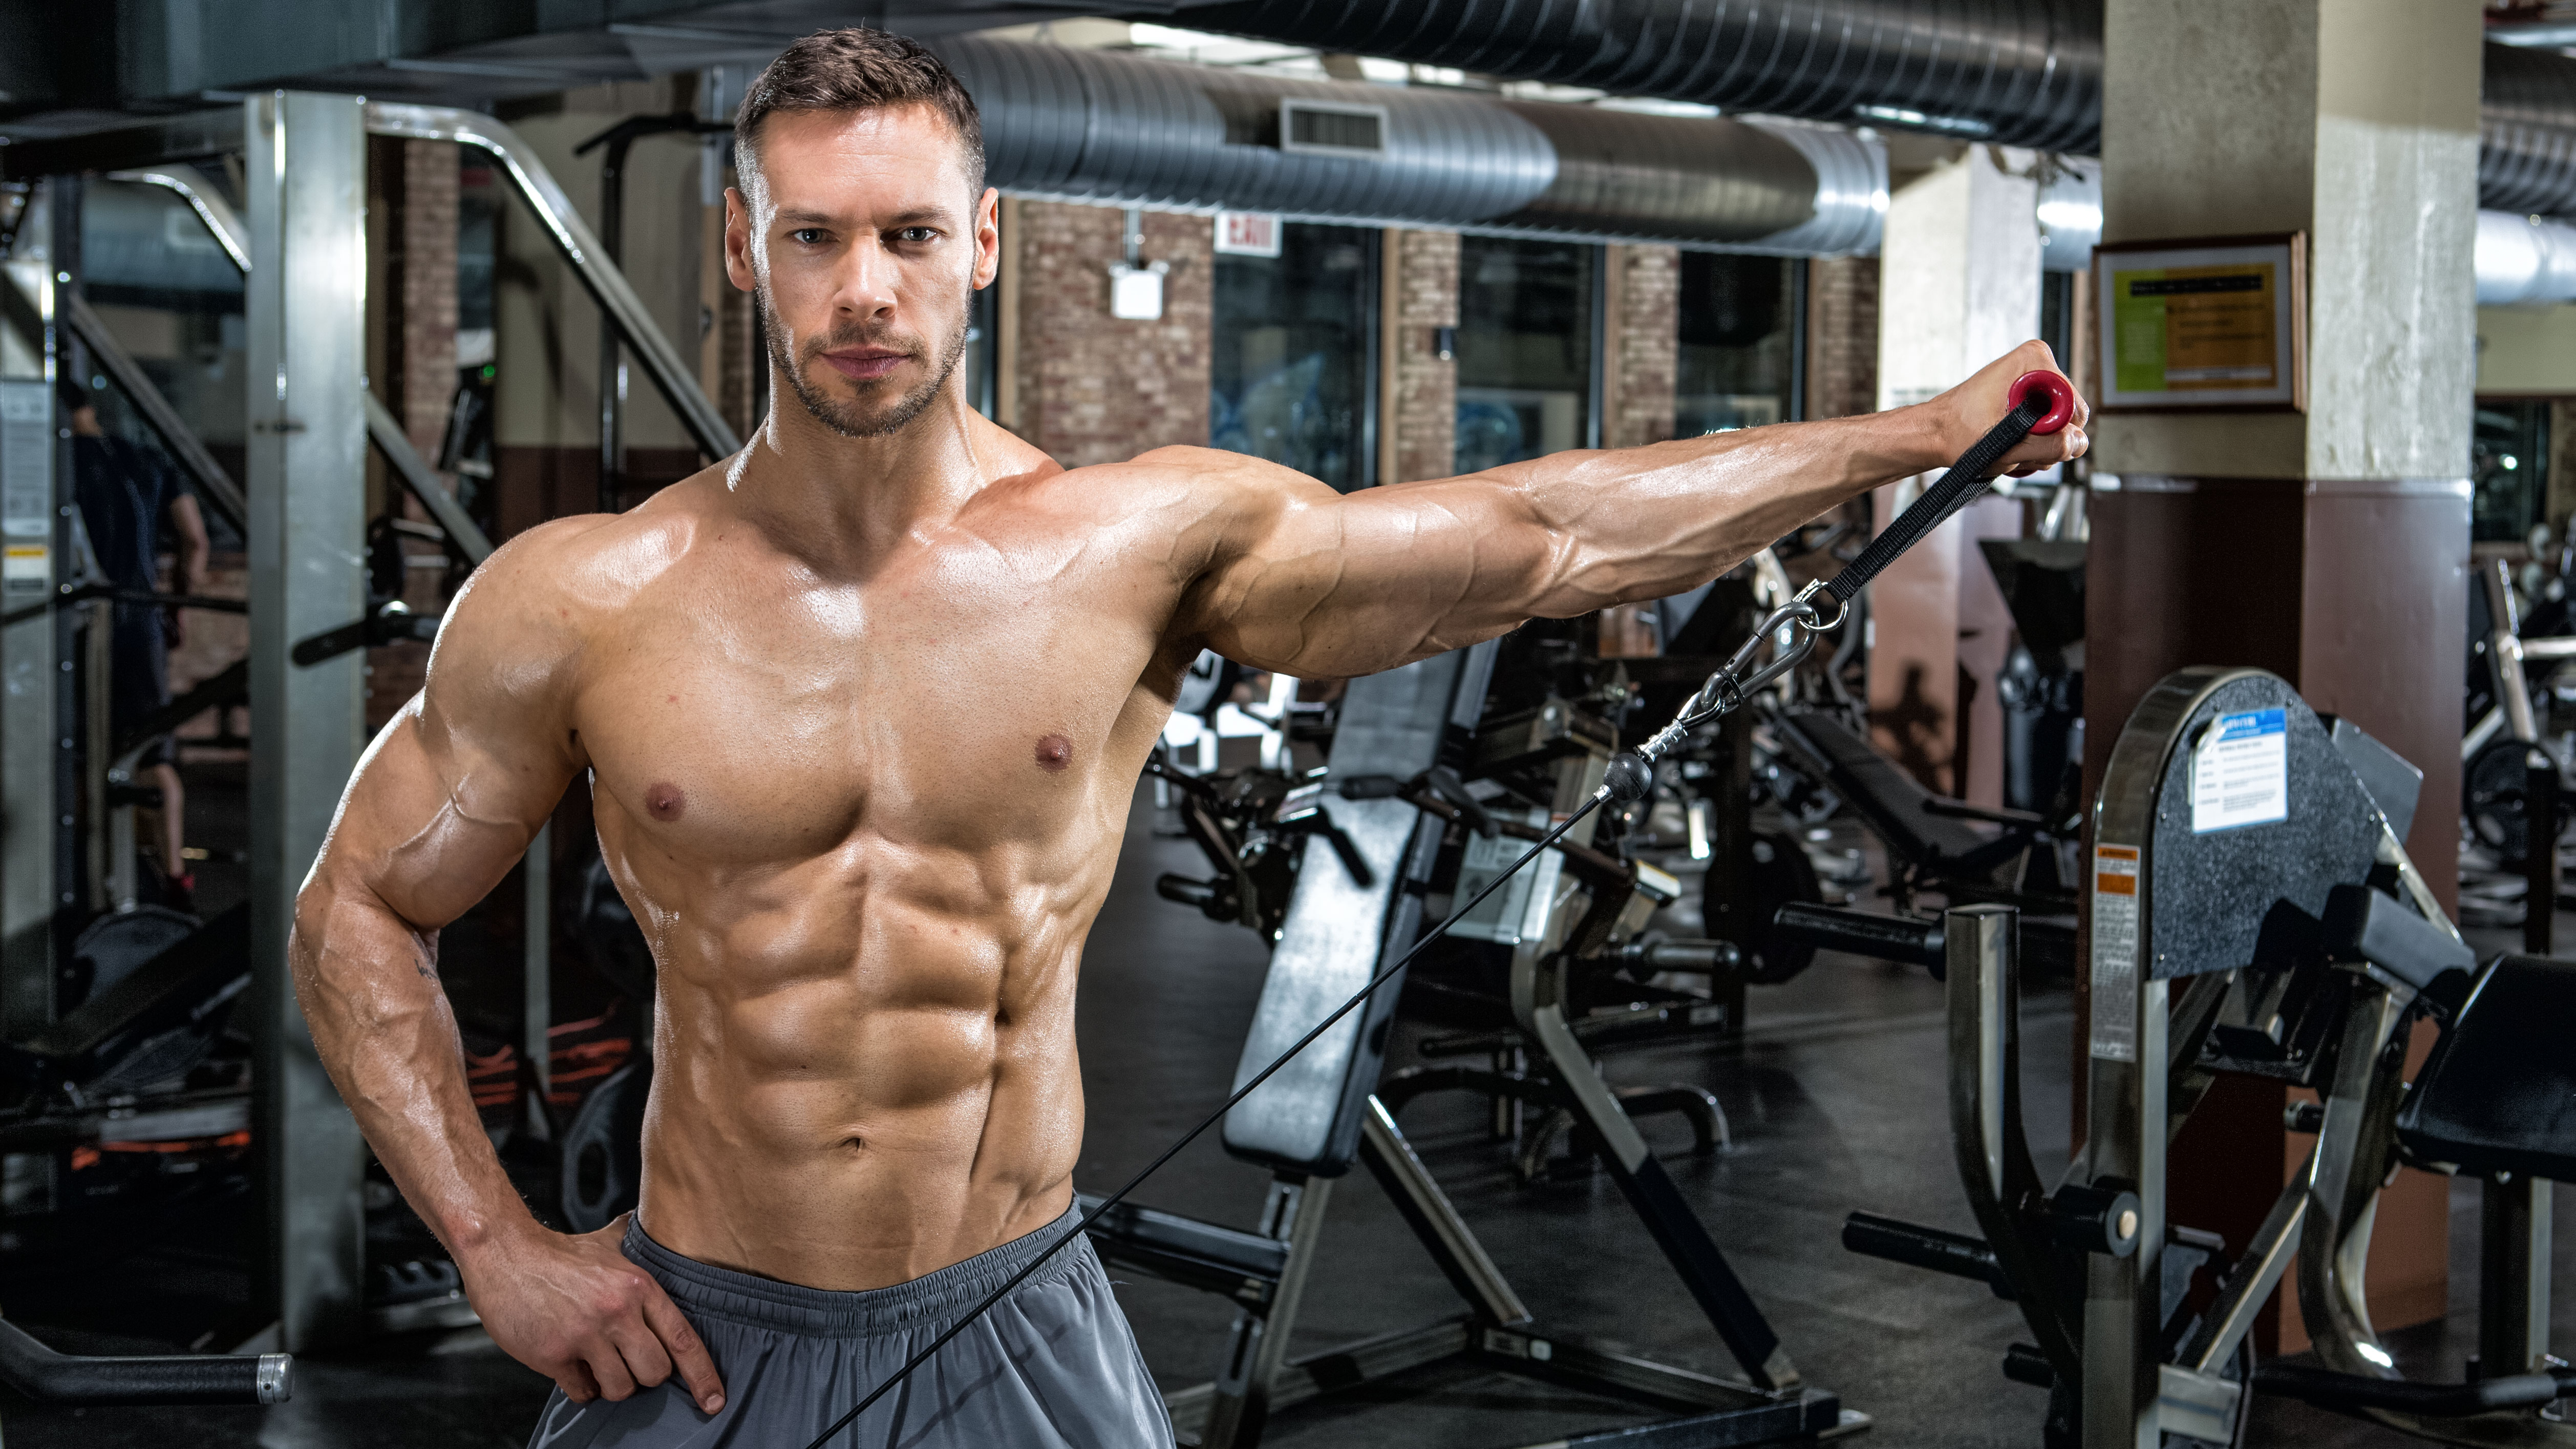 The 4 Biggest Myths About Getting Ripped